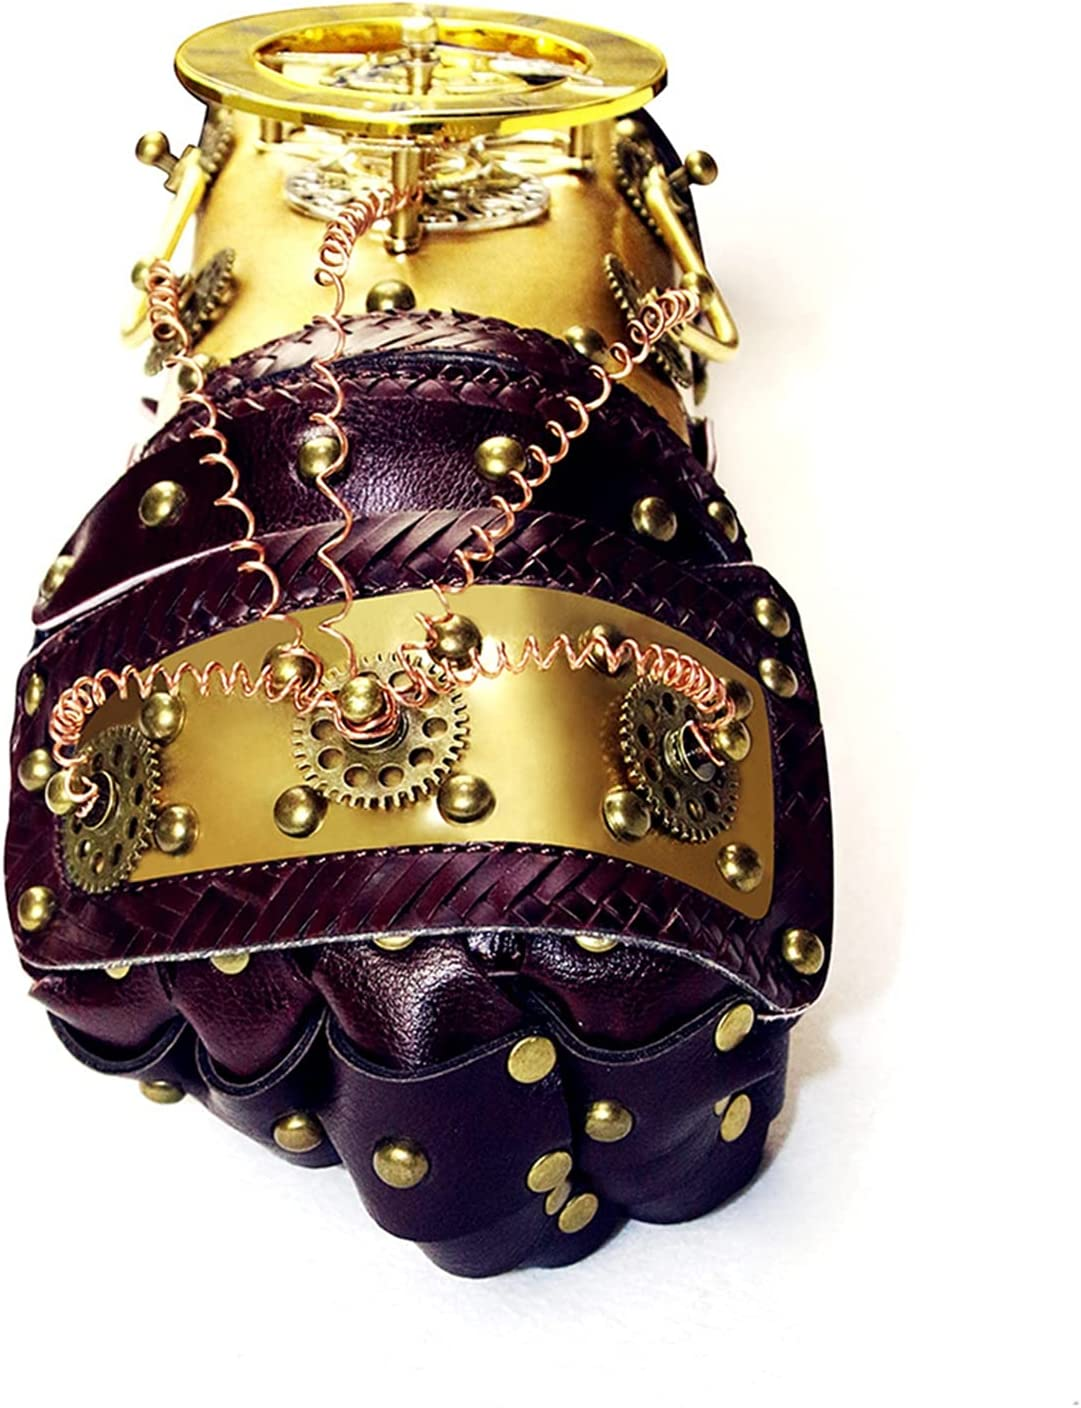 LEADALL Steampunk Mechanical Genuine Free Shipping Glove Armguards Vintage Popularity